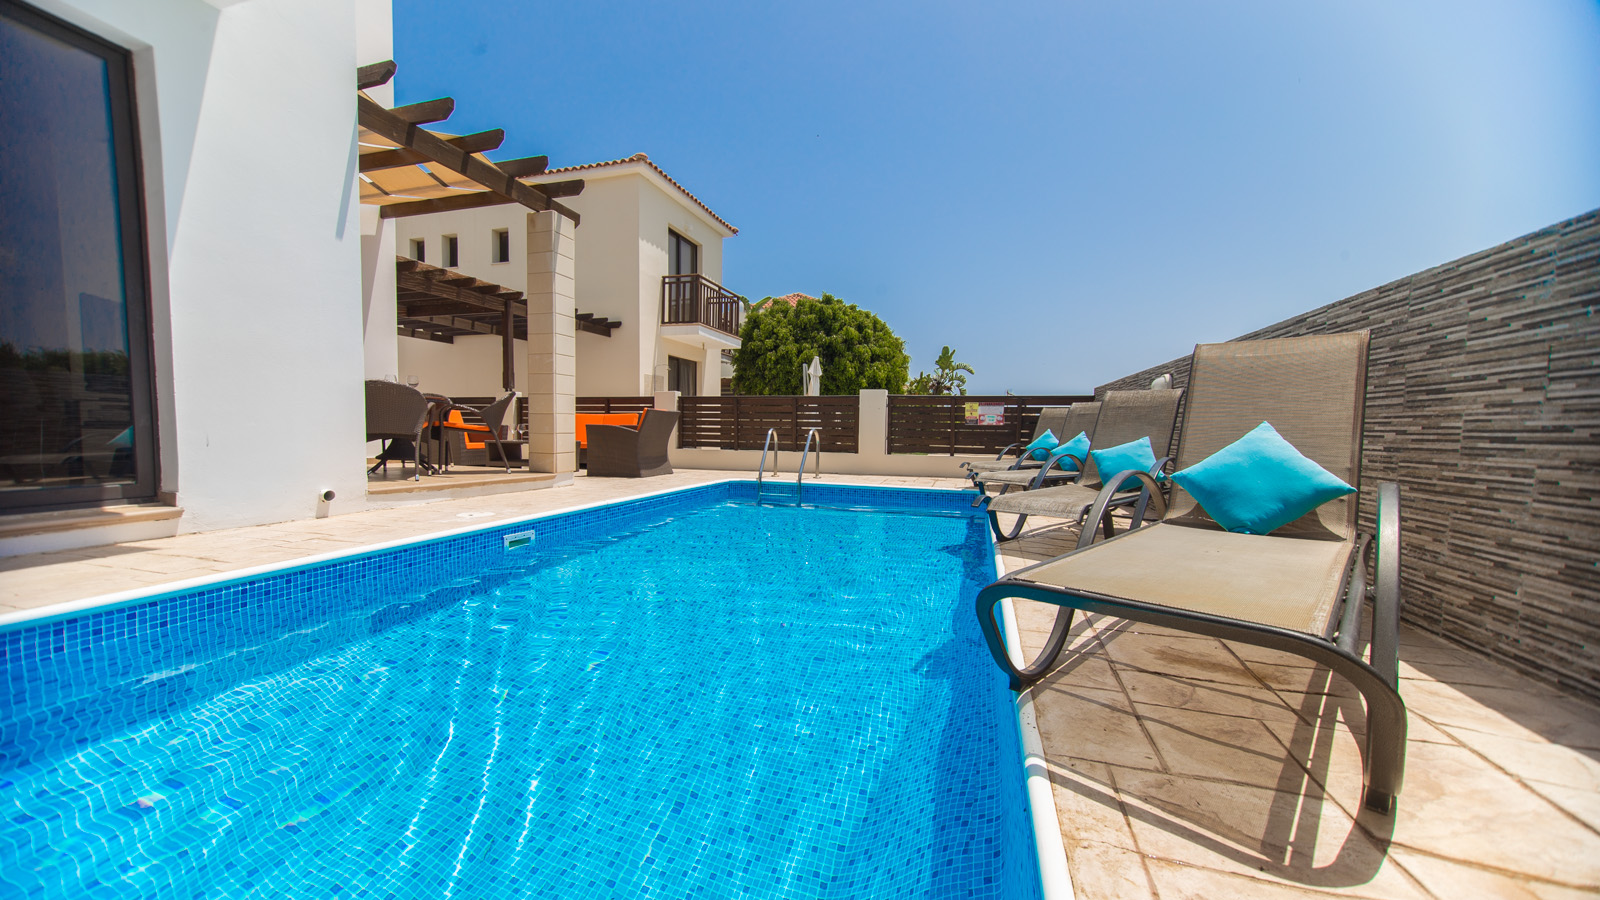 2 Bed Short Term Rental Villa Protaras